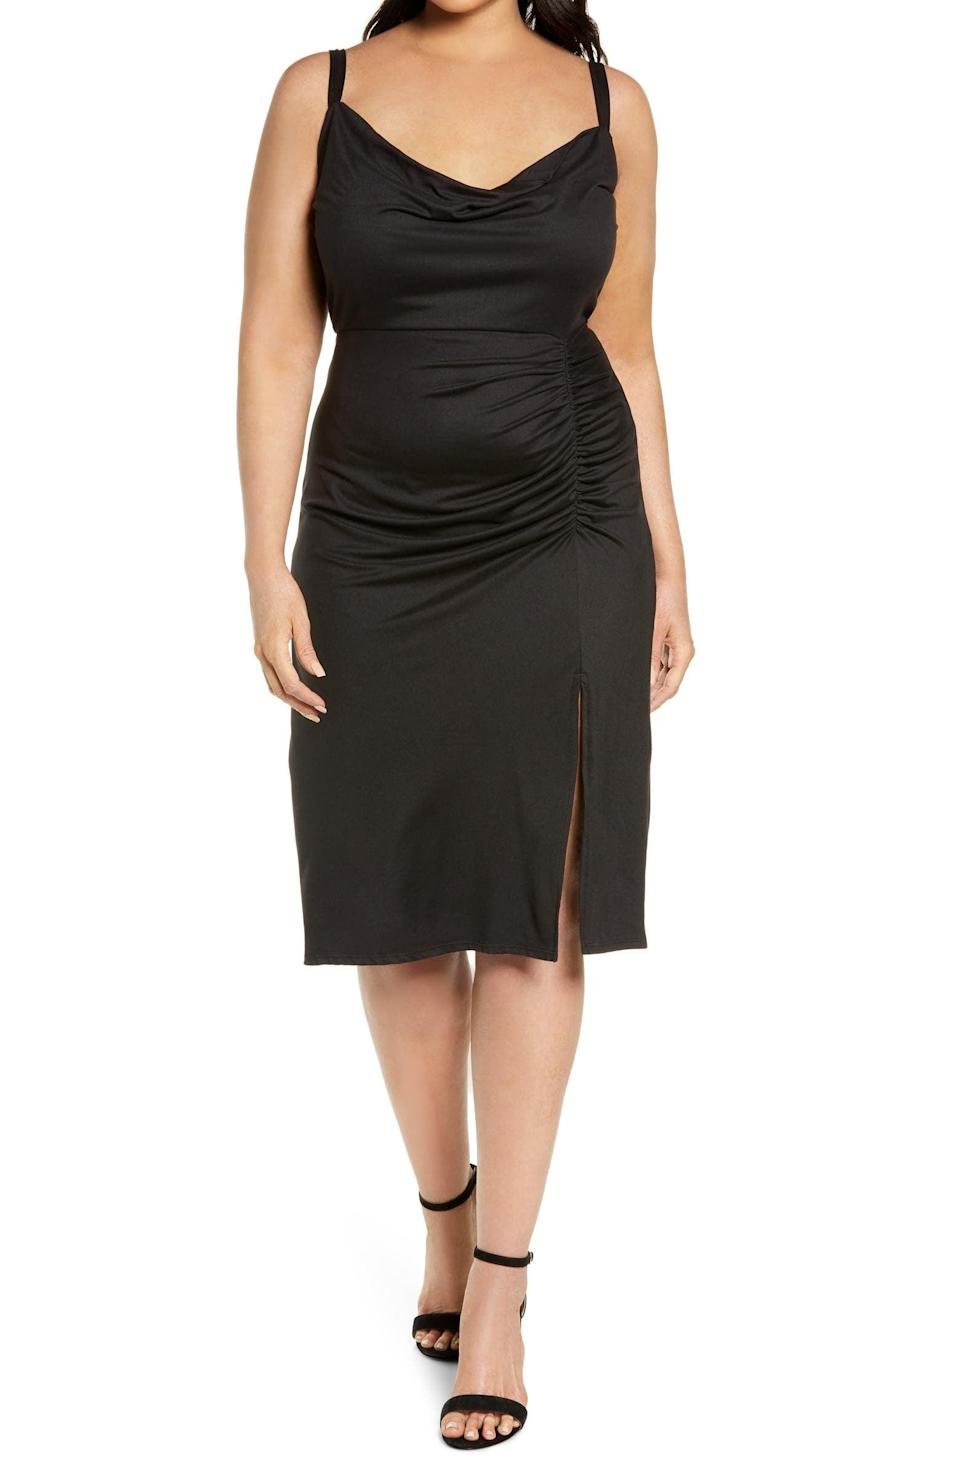 <p>Stepping out for an evening date? Don't leave this <span>Socialite Ruched Cowl Neck Body-Con Dress</span> ($41, originally $69) at home.</p>